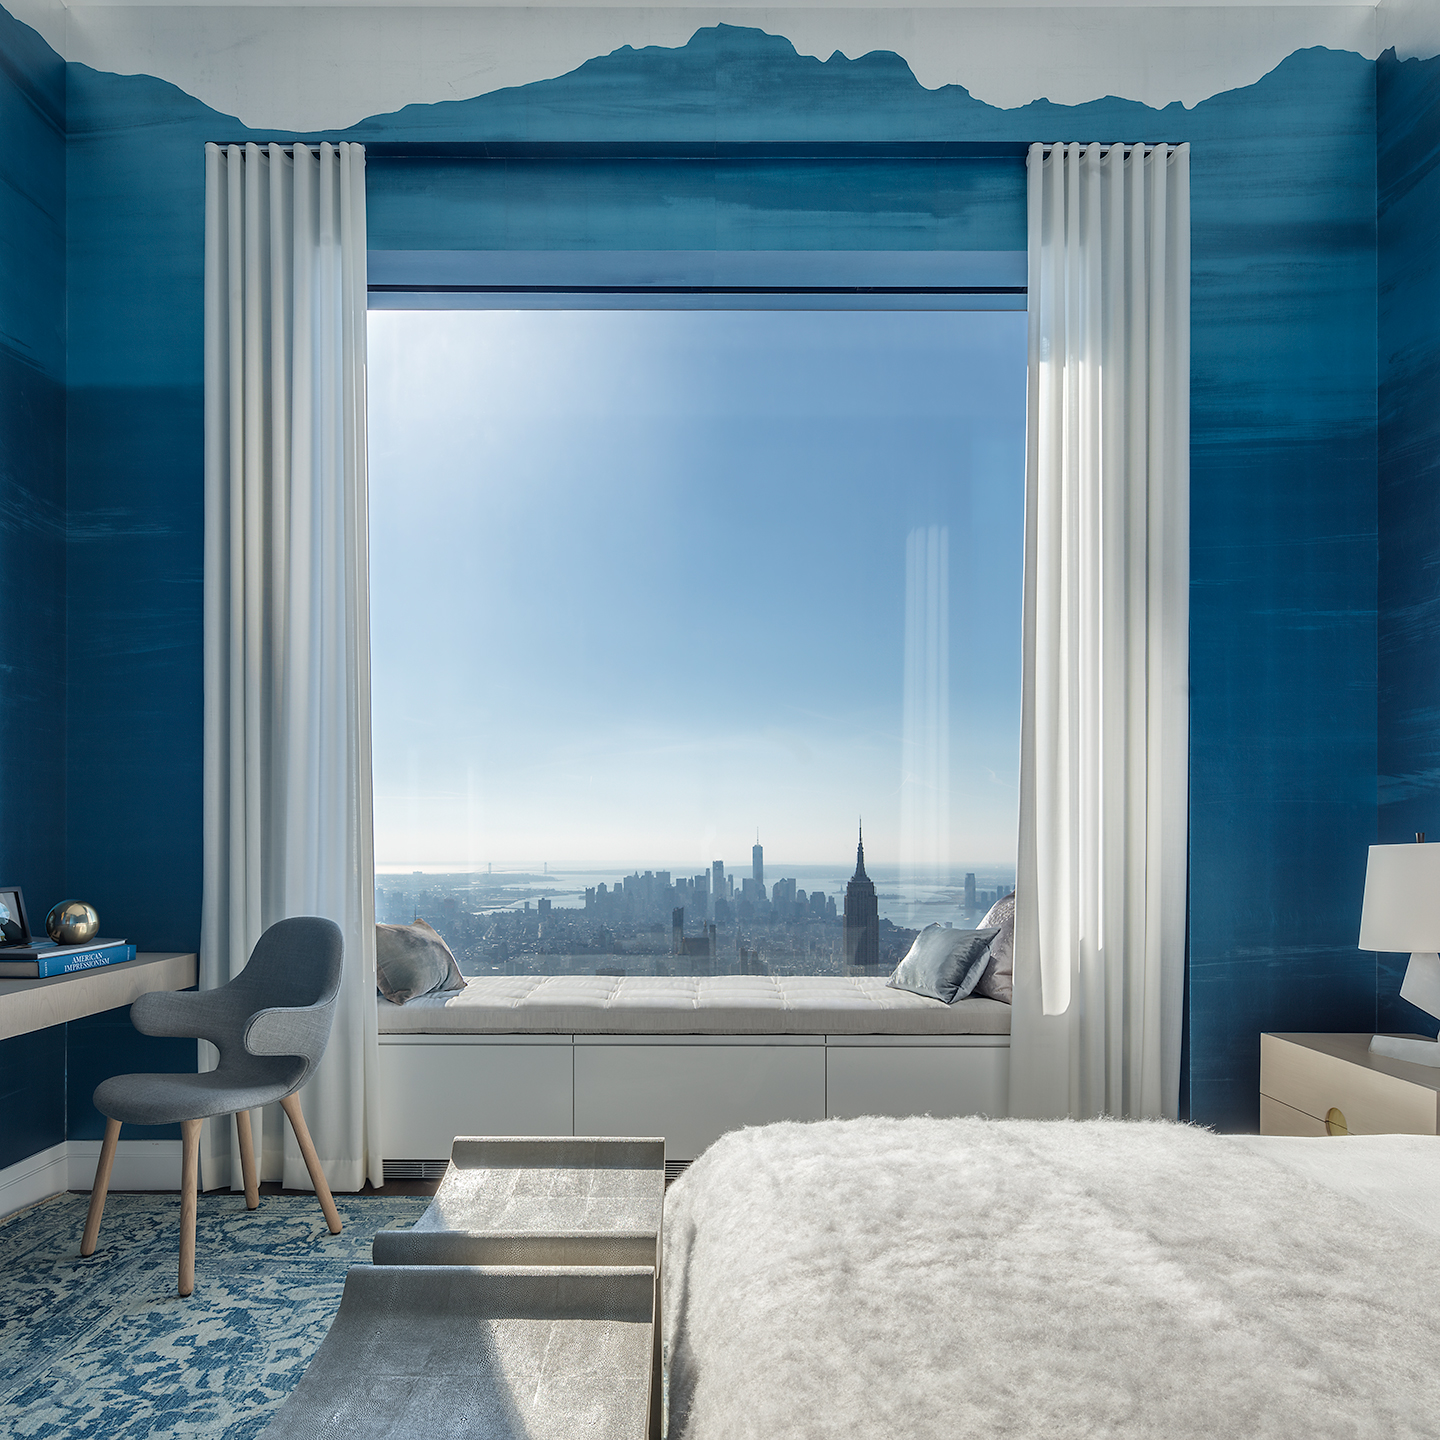 peek inside 432 park avenue's $40m, 92nd-floor penthouse - curbed ny